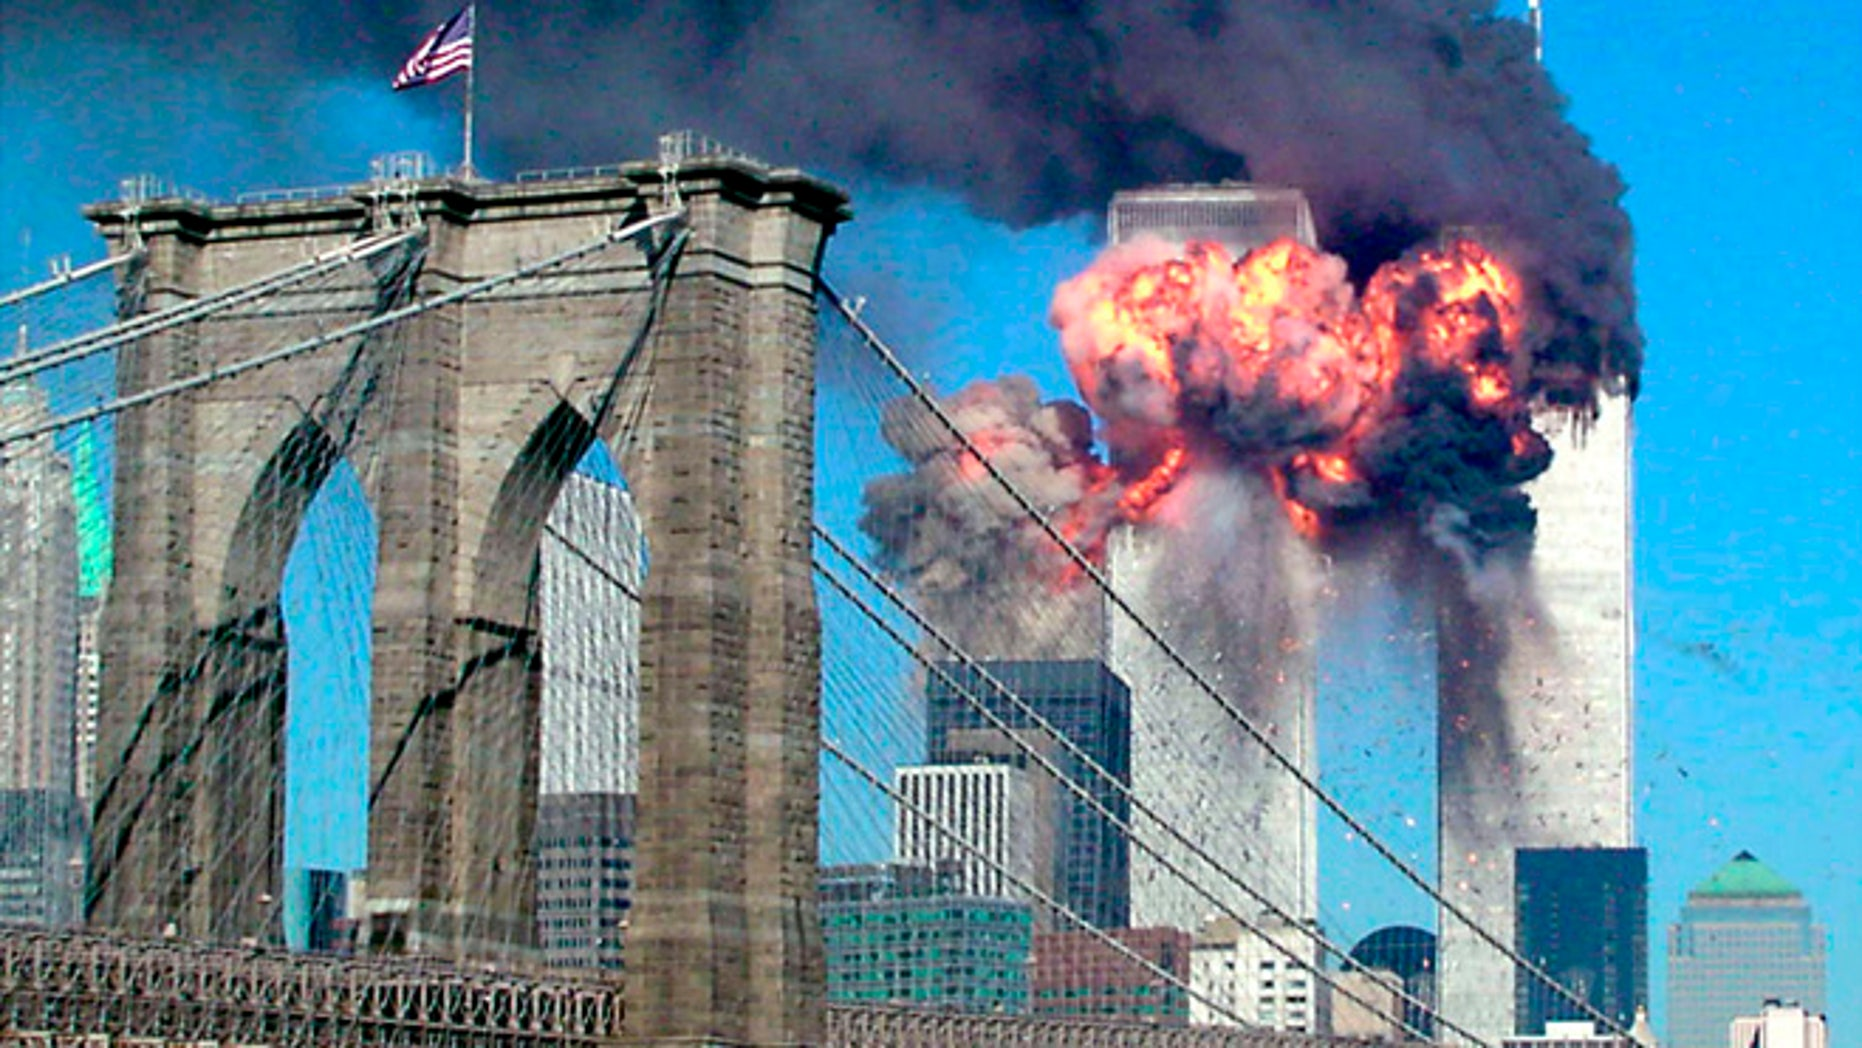 The second of the World Trade Center bursts into flames on September 11, 2001.